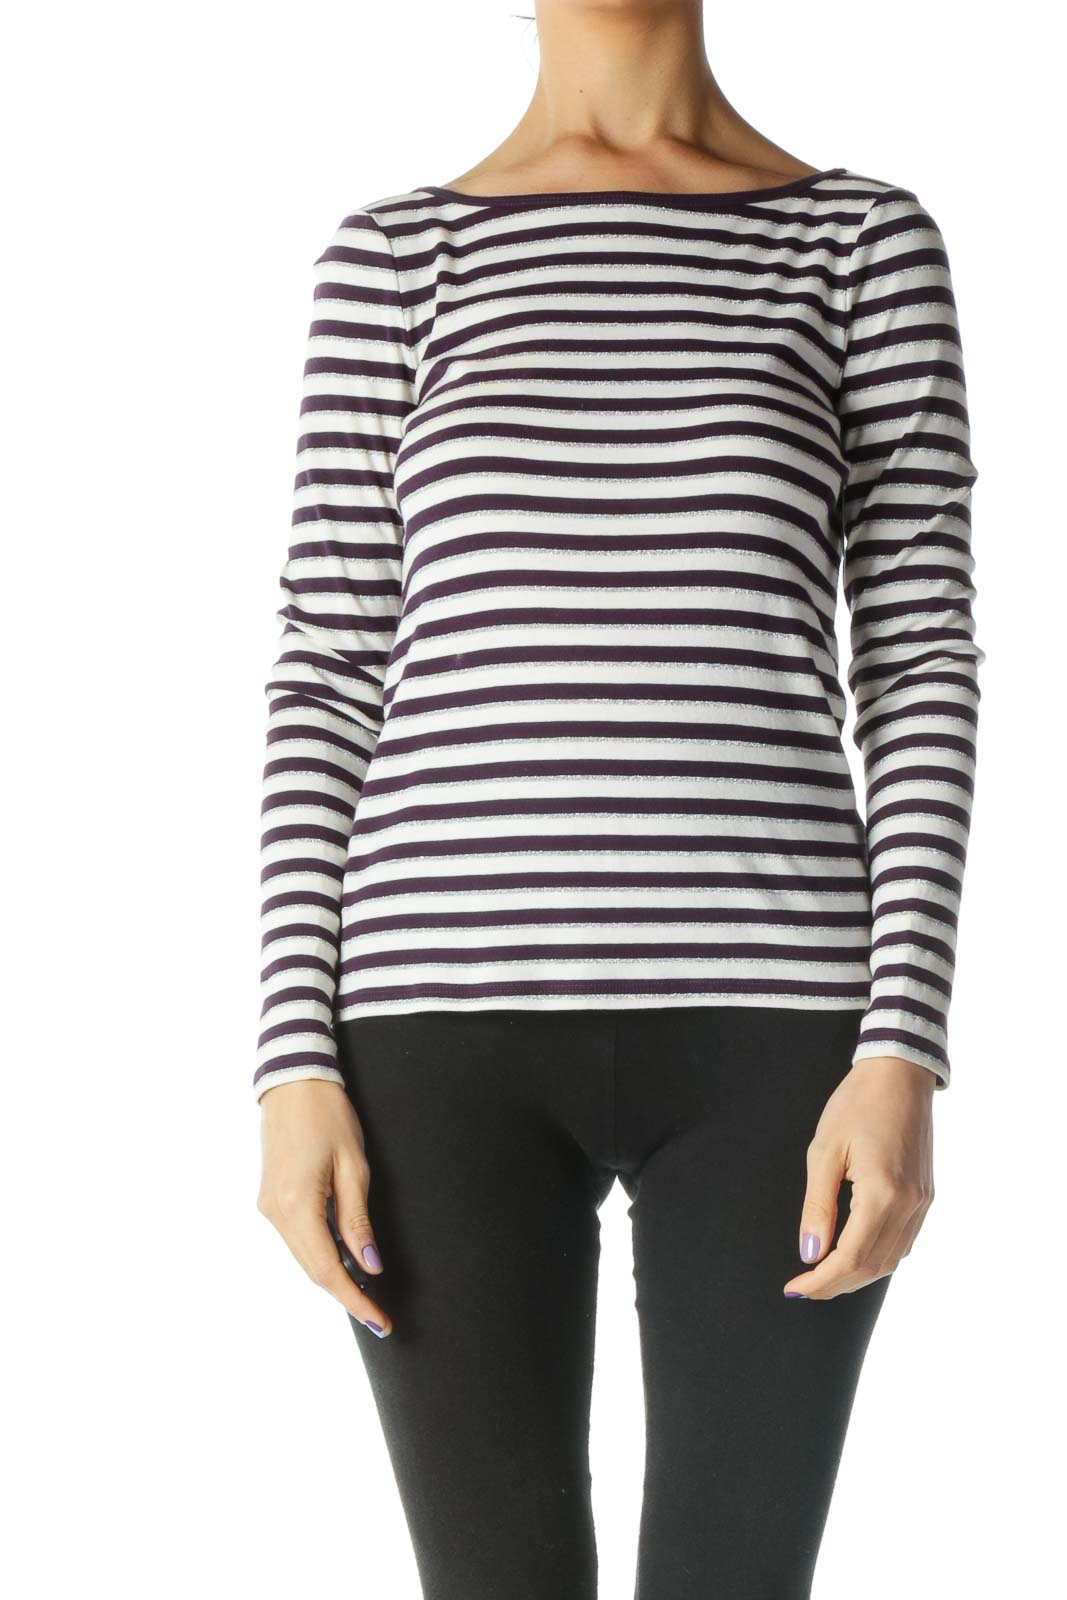 White, Purple, and Silver Striped Long Sleeve Top